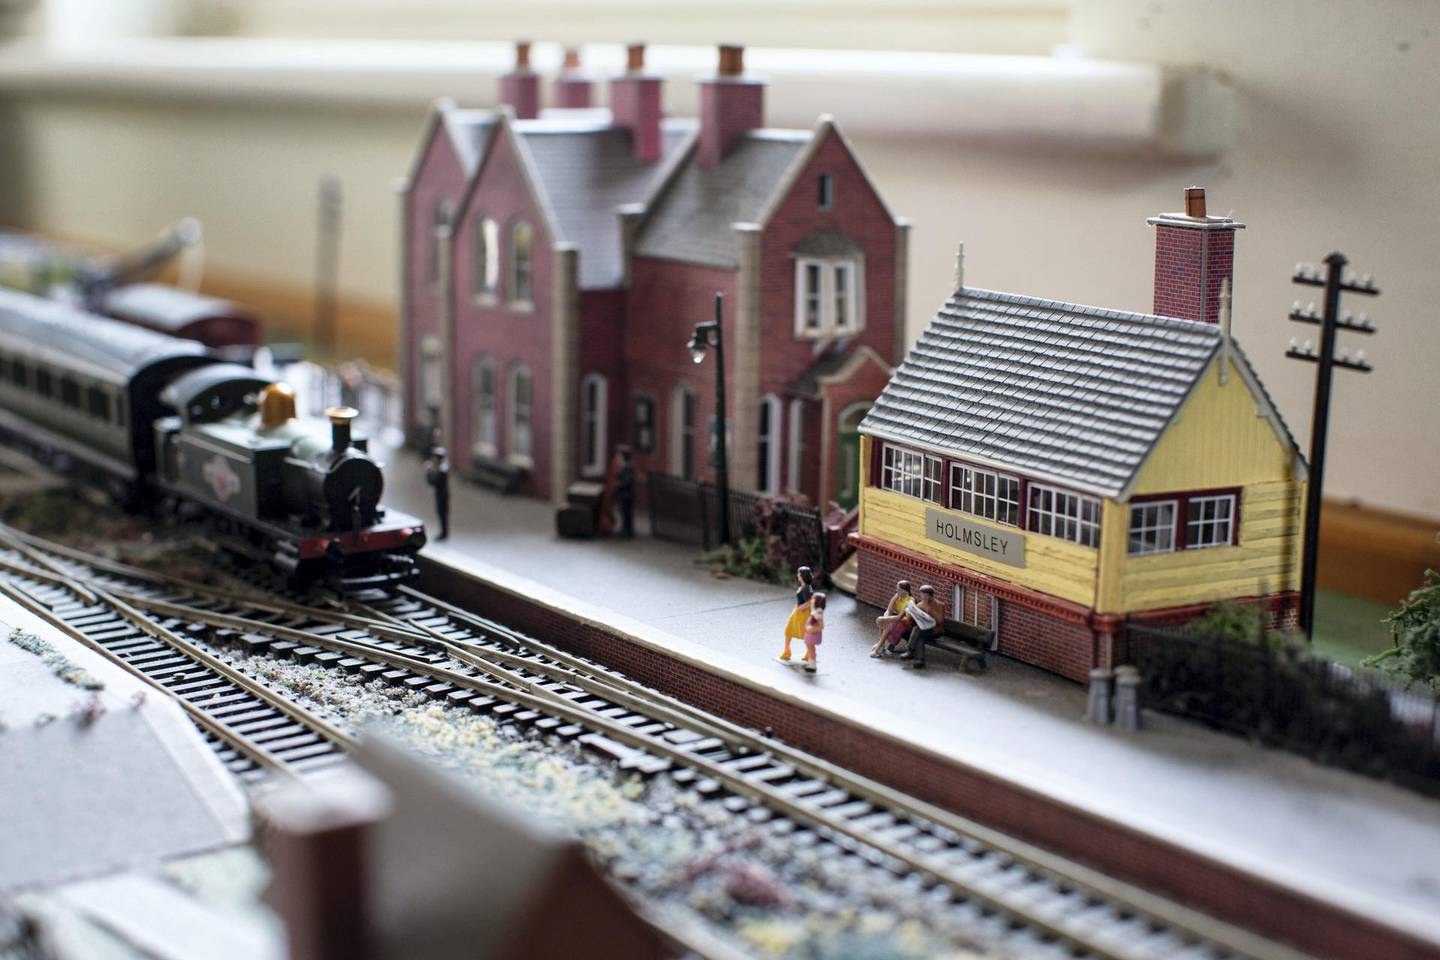 Paul Peachey feature on reinstating old railway lines, including the line the line in the New Forrest near Holmsley. The old station house at Holmsley is now a popular tea house and destination for tourists and day trippers. Inside is a model of the station in its former glory.